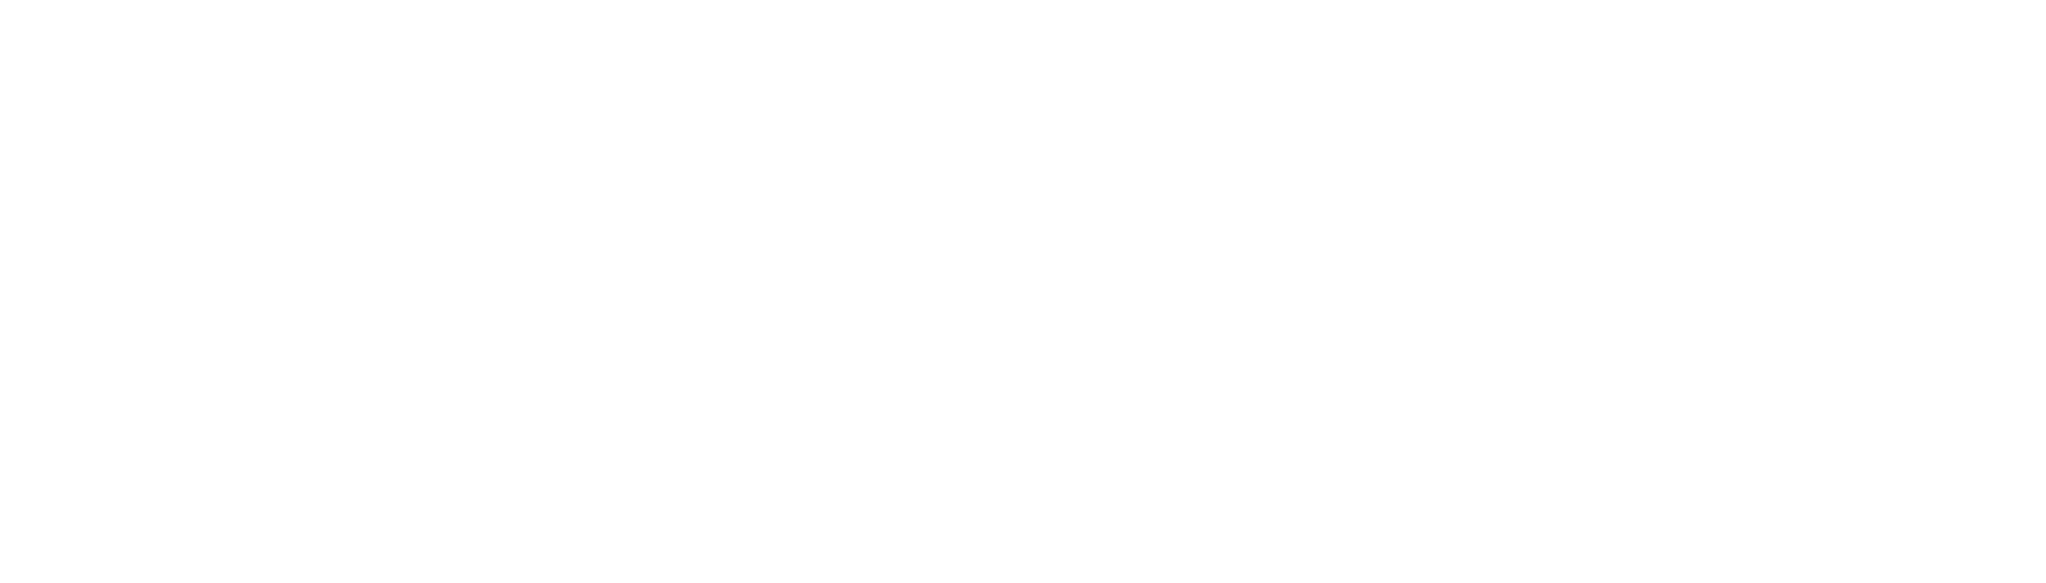 Iteratr Learning